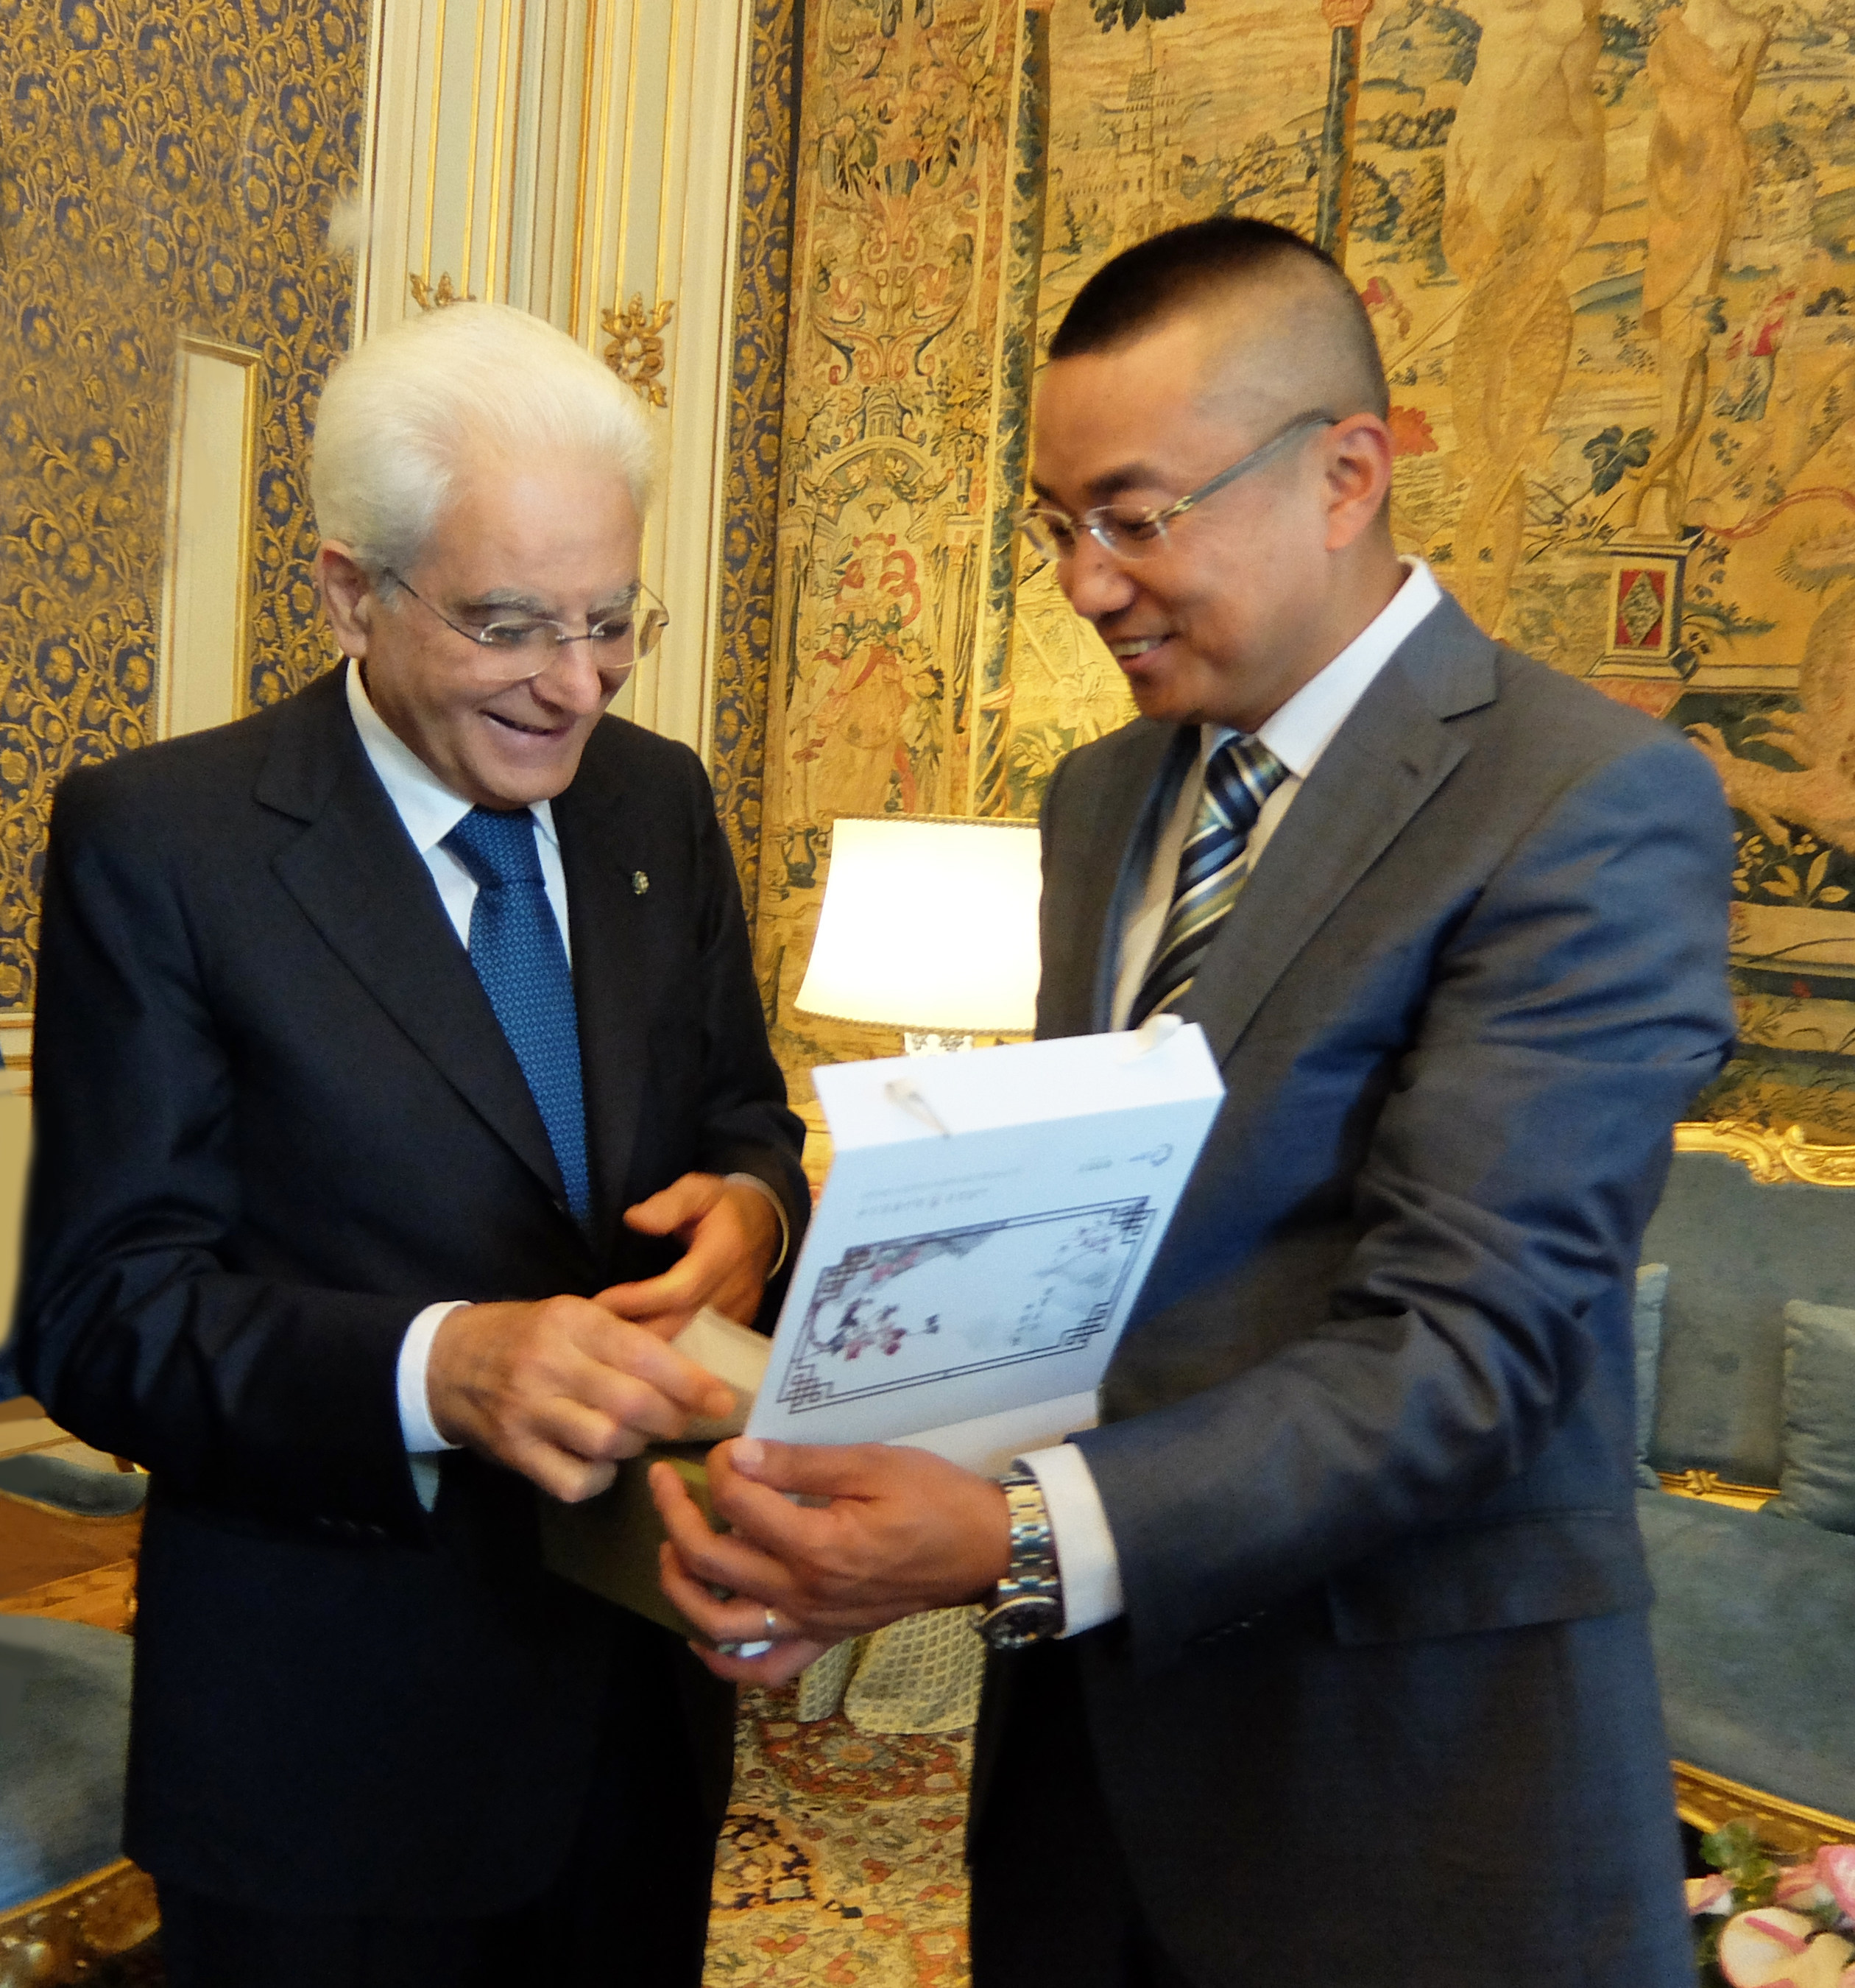 President Mattarella (left) listened to the introduction of the national gifts from XieYong (right), the founder of DR PLANT, at the Presidential palace.